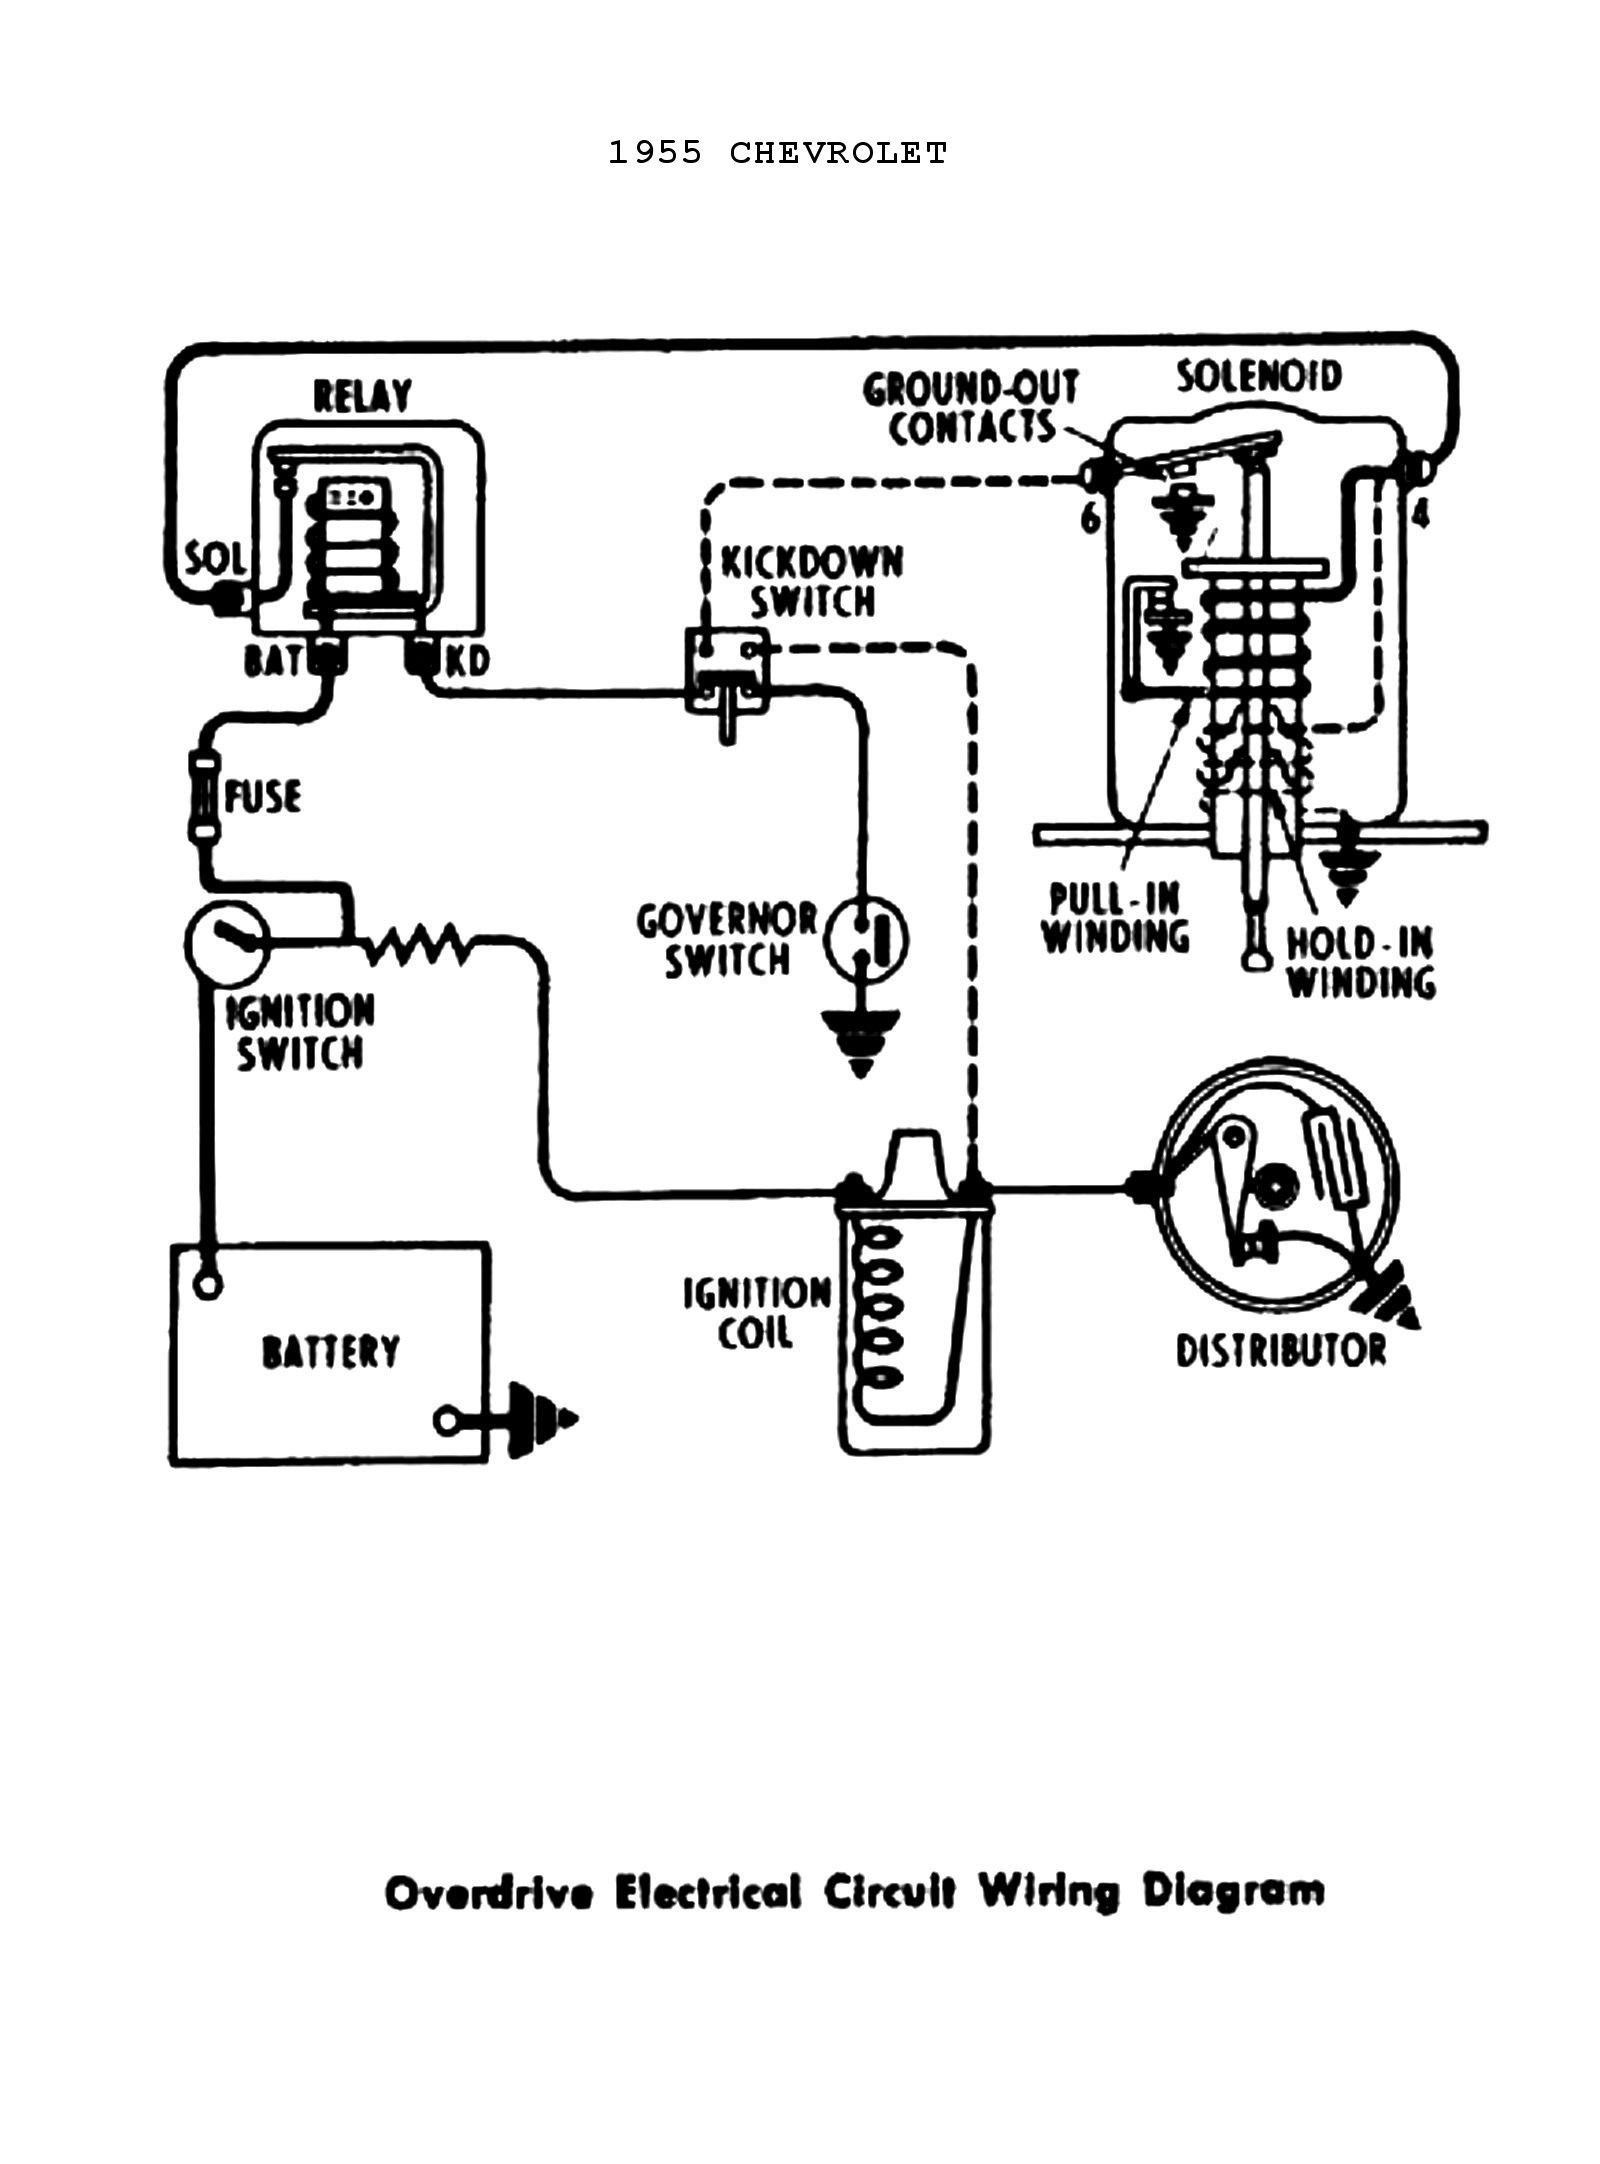 1955 Power Windows & Seats · 1955 Overdrive Circuit Chevy Wiring diagrams from gm starter solenoid